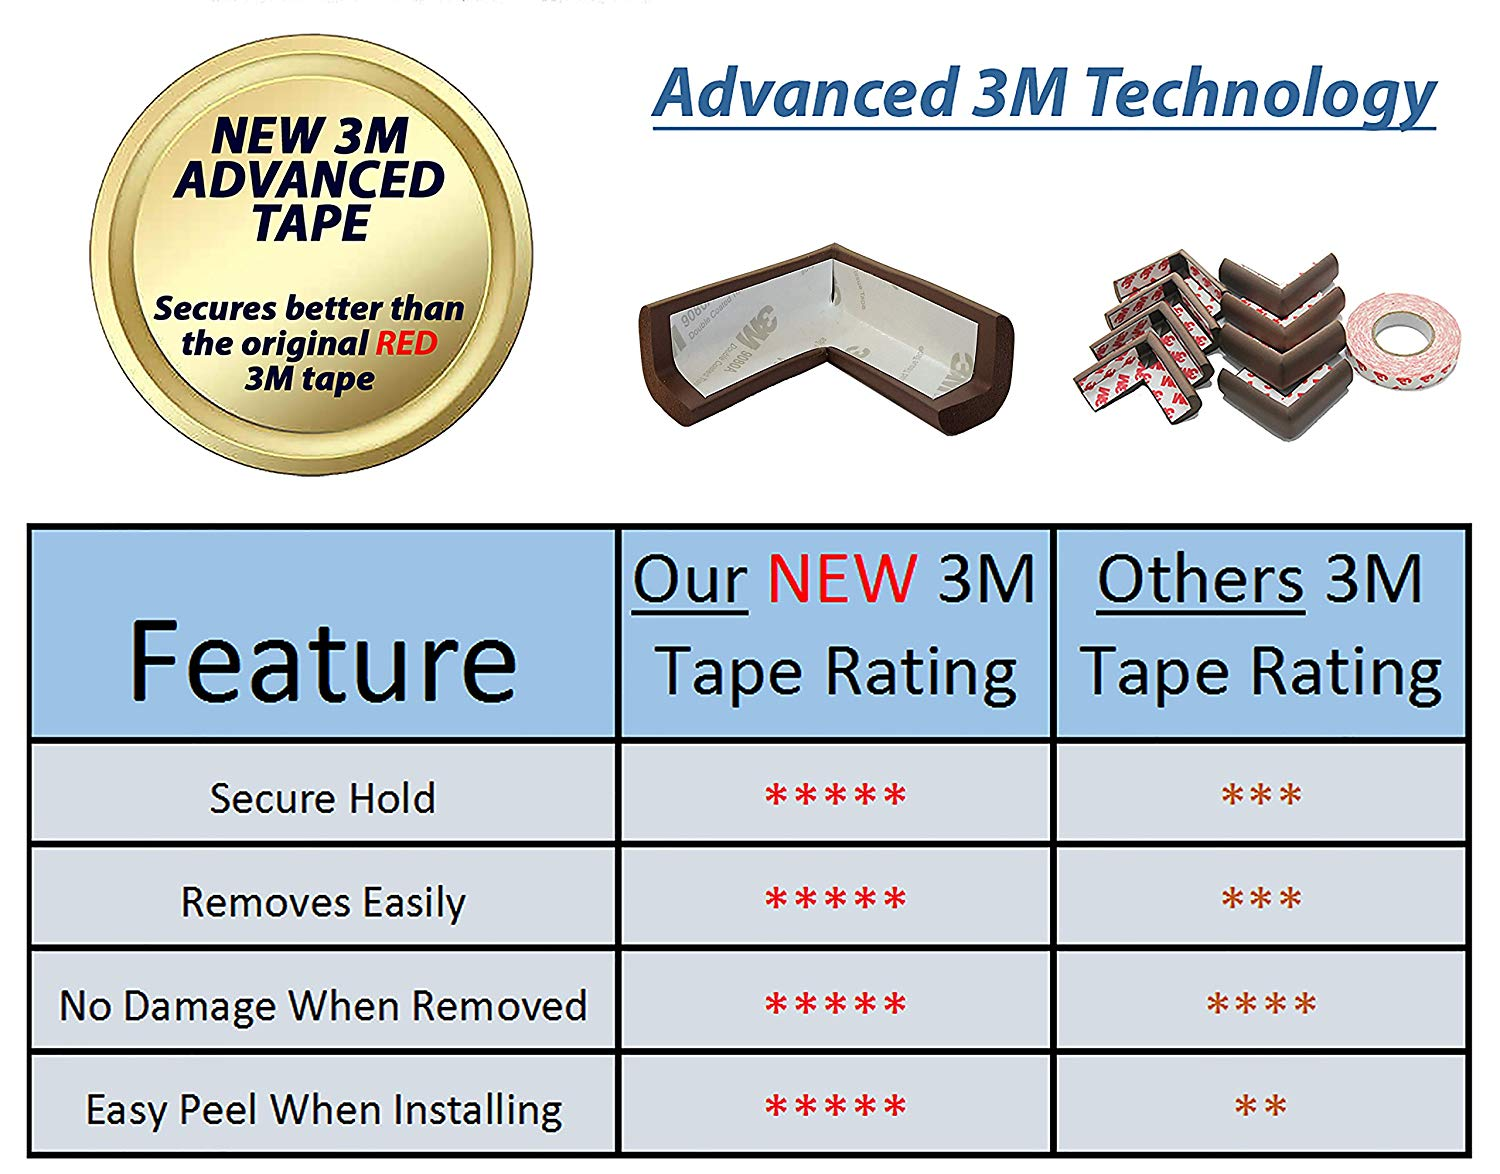 Cabinet Locks & Straps Safety Equipment Honey Baby Safety Table Desk Corner Pad Protection Strip Childrens Safety Protection Strips Gift Double-sided Adhesive Baby Safe Moderate Price